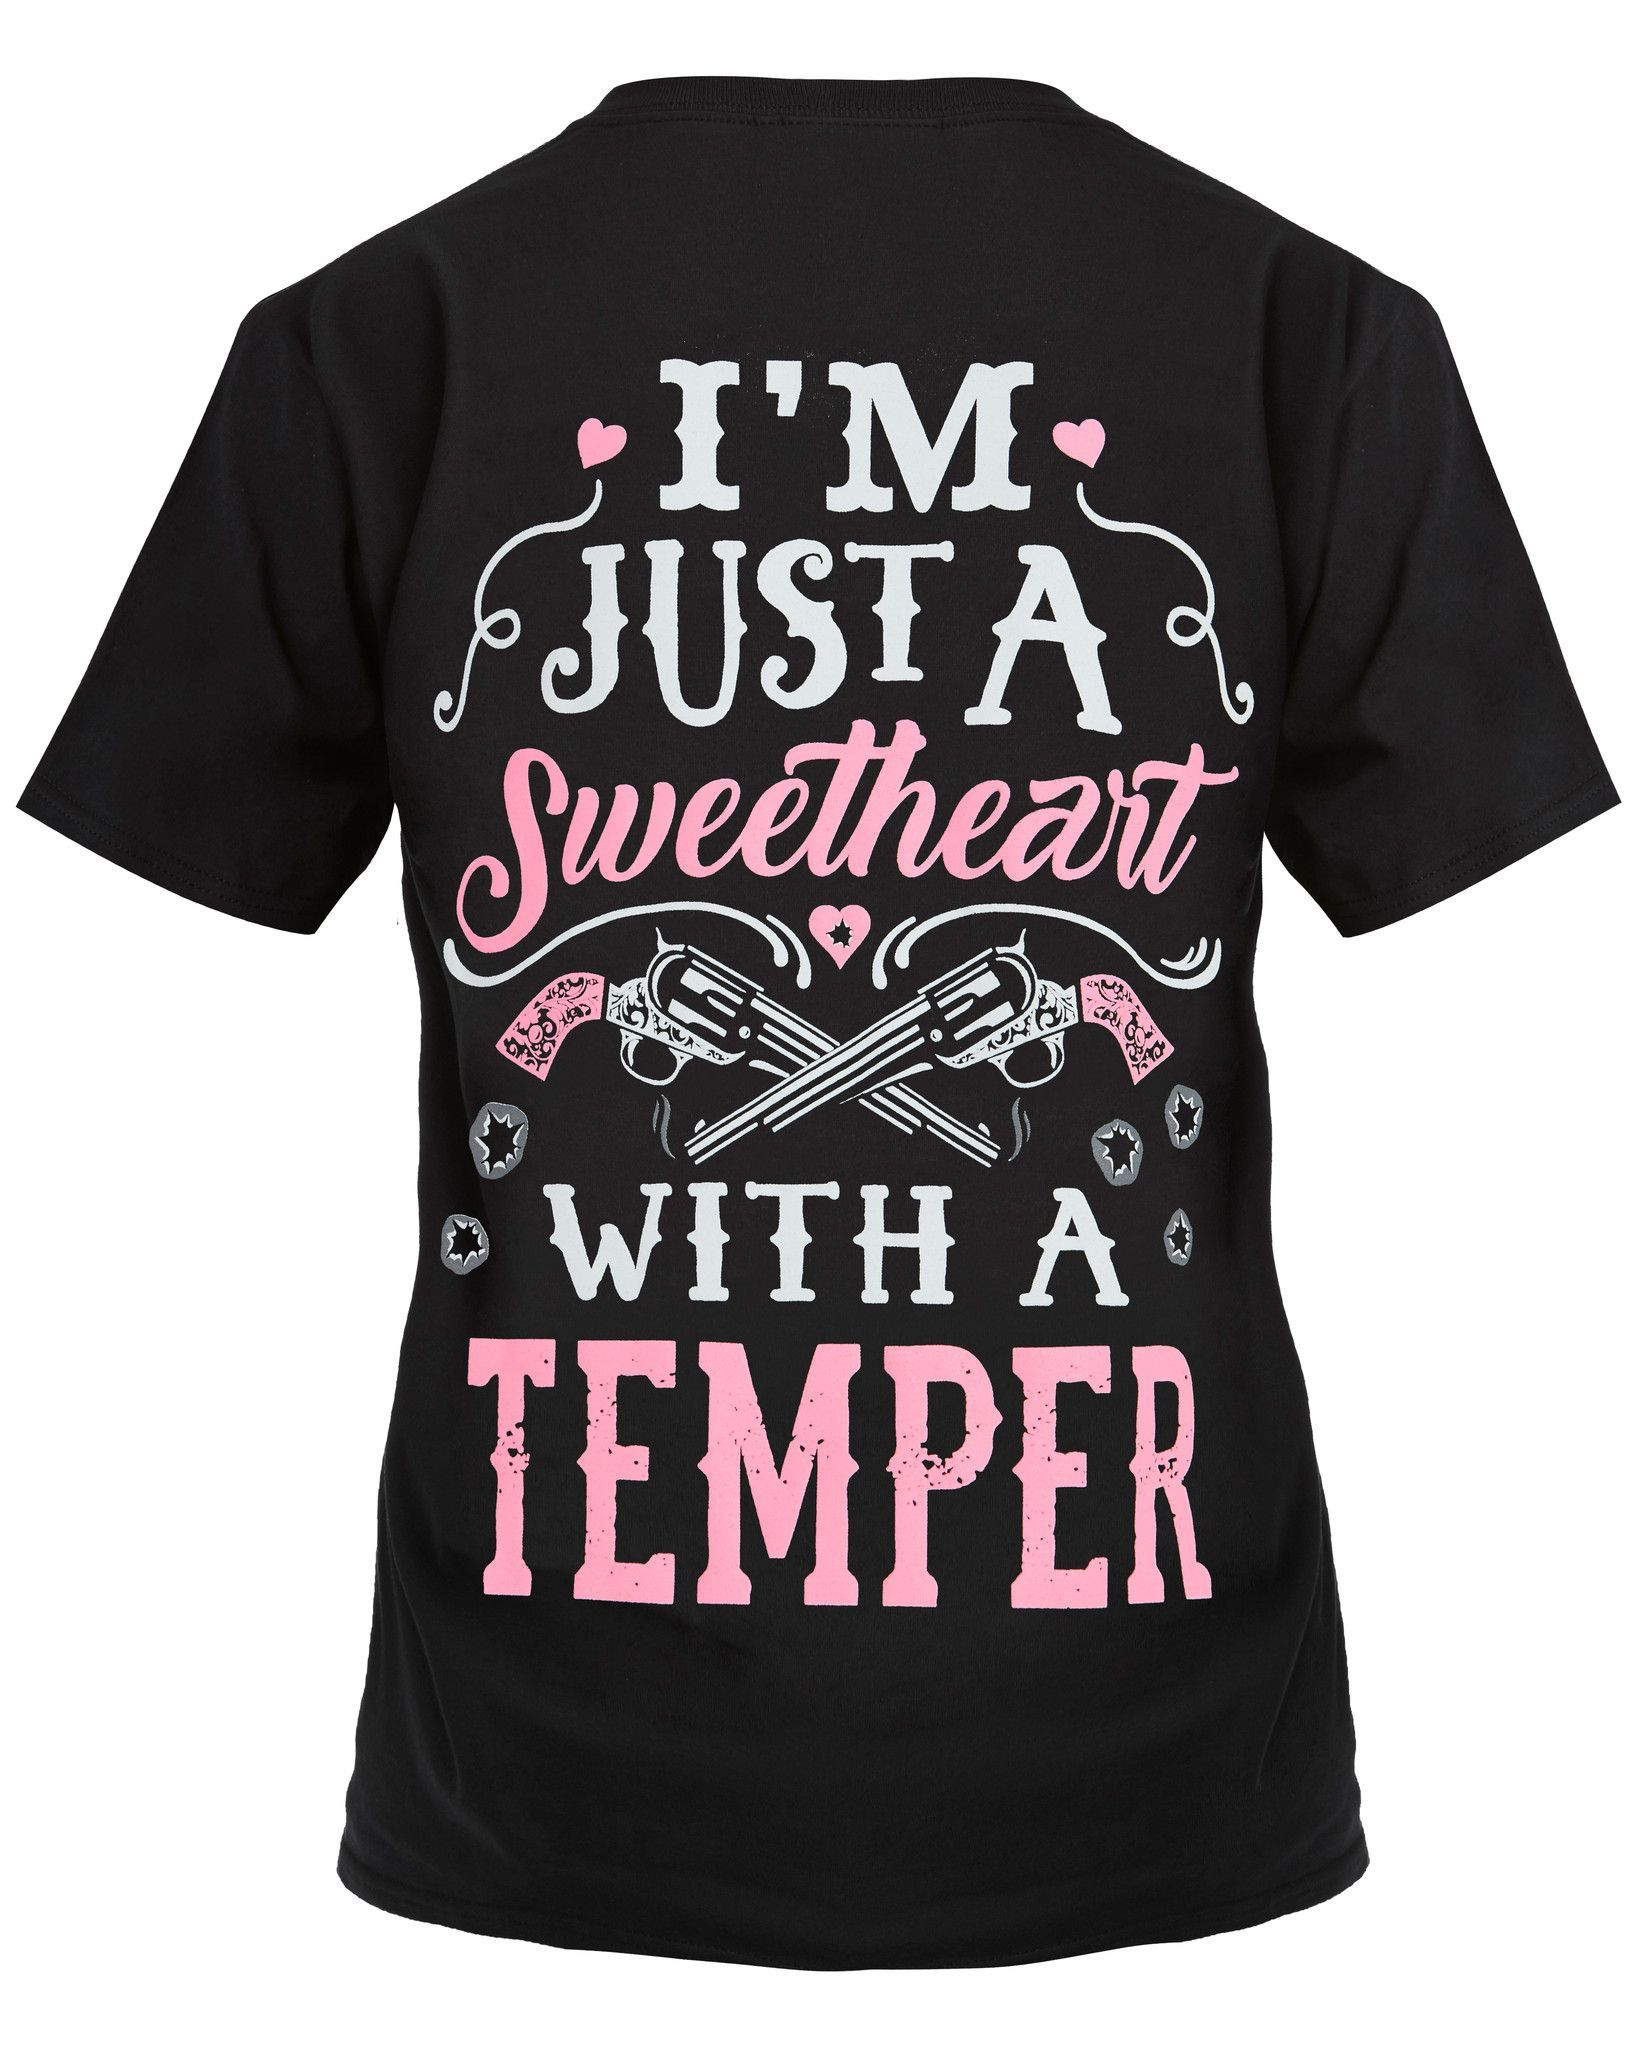 Ium just a sweetheart with a temper shirt country clothes and